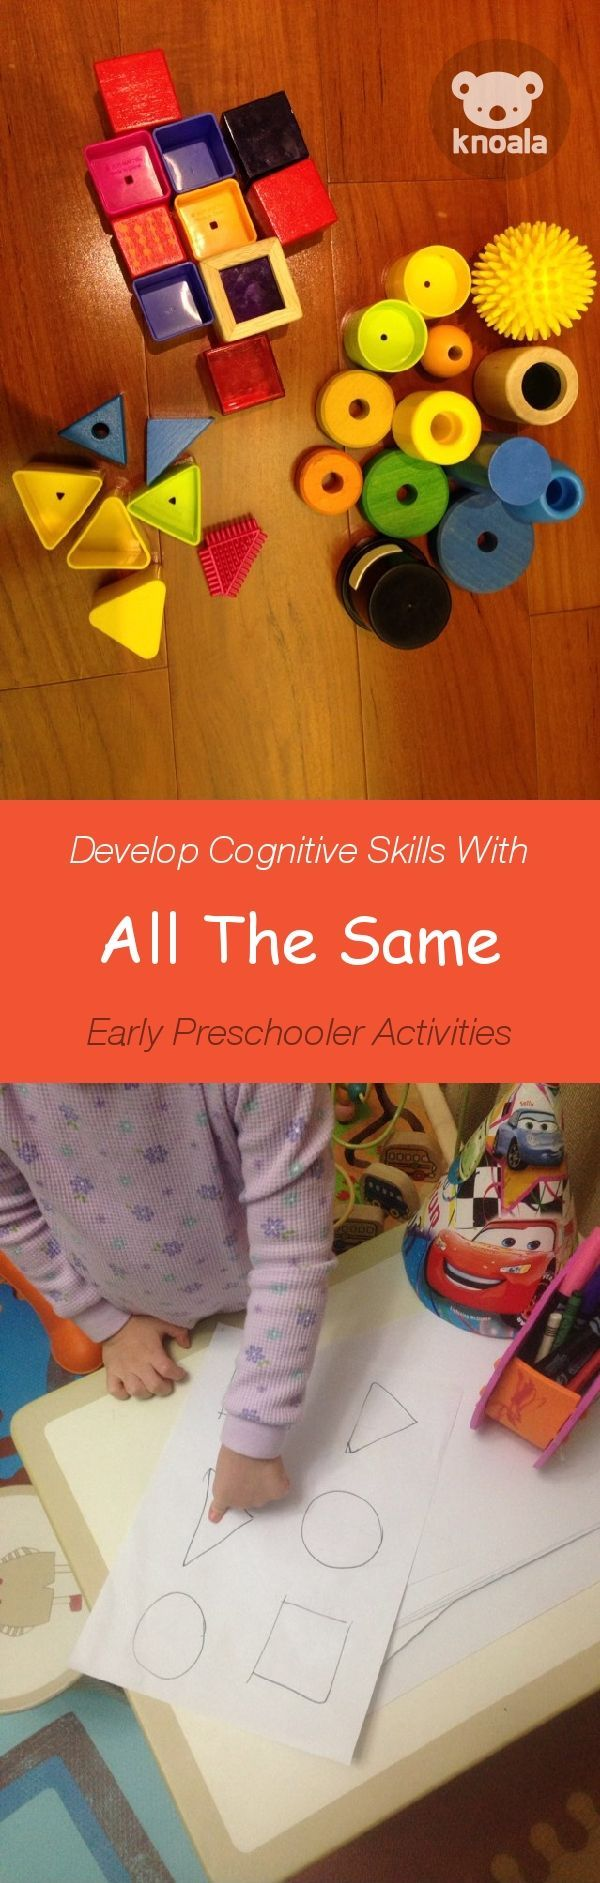 Knoala Early Preschooler Activity: 'All The Same' helps little ones develop Cognitive skills. Click for simple instructions & 1000s more fun, easy, no-prep activities for kids ages 0-5! #activities #educational